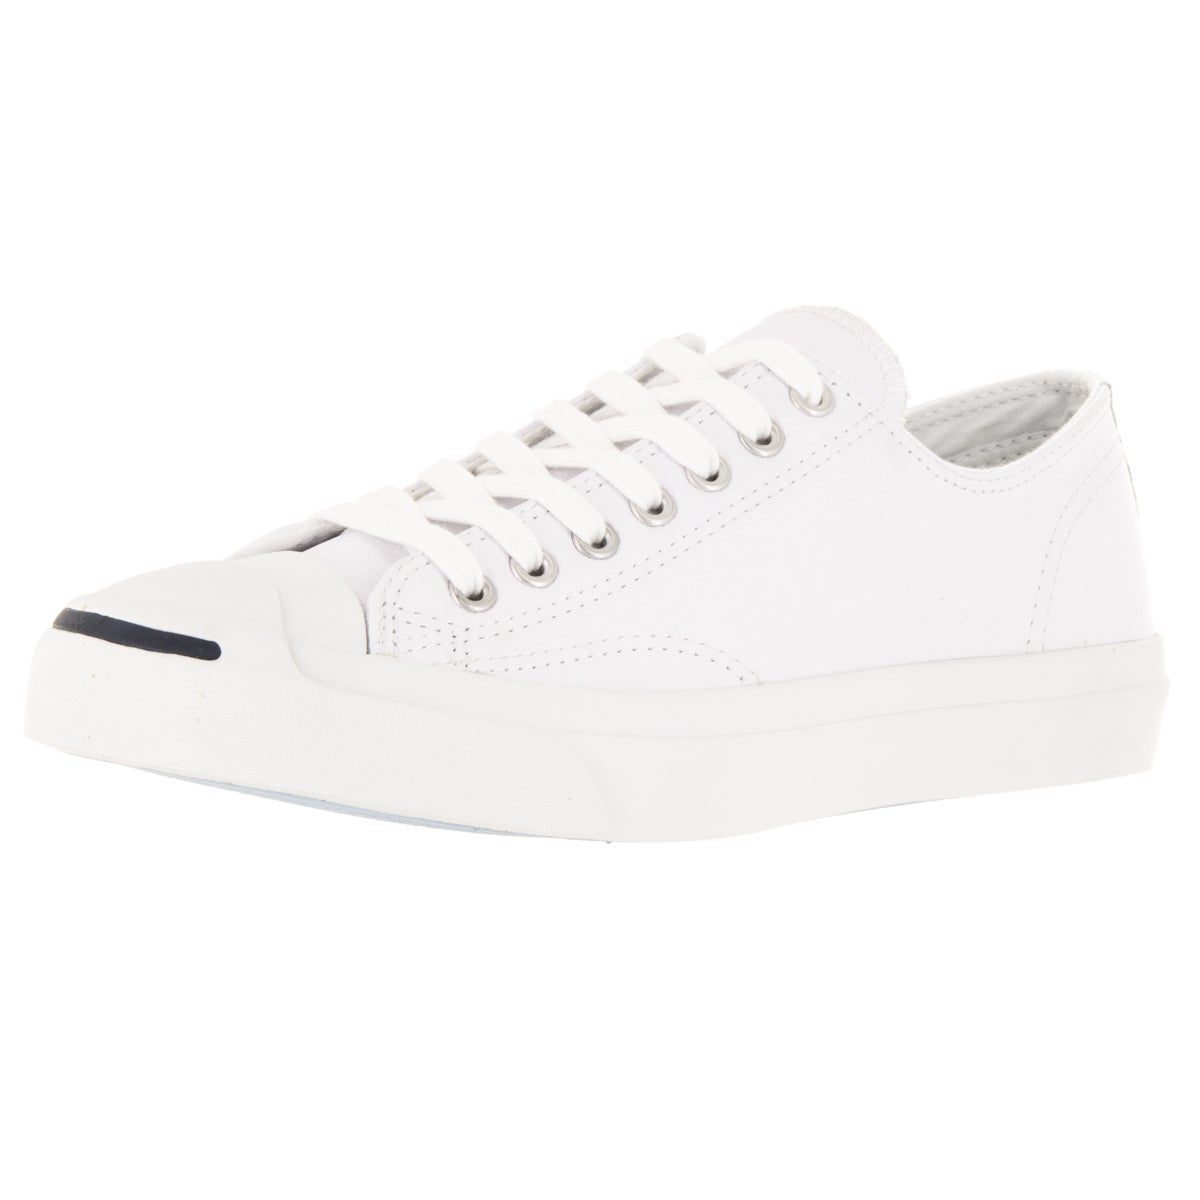 Converse Unisex Jack Purcell Lea Ox White/Navy Casual Sho...